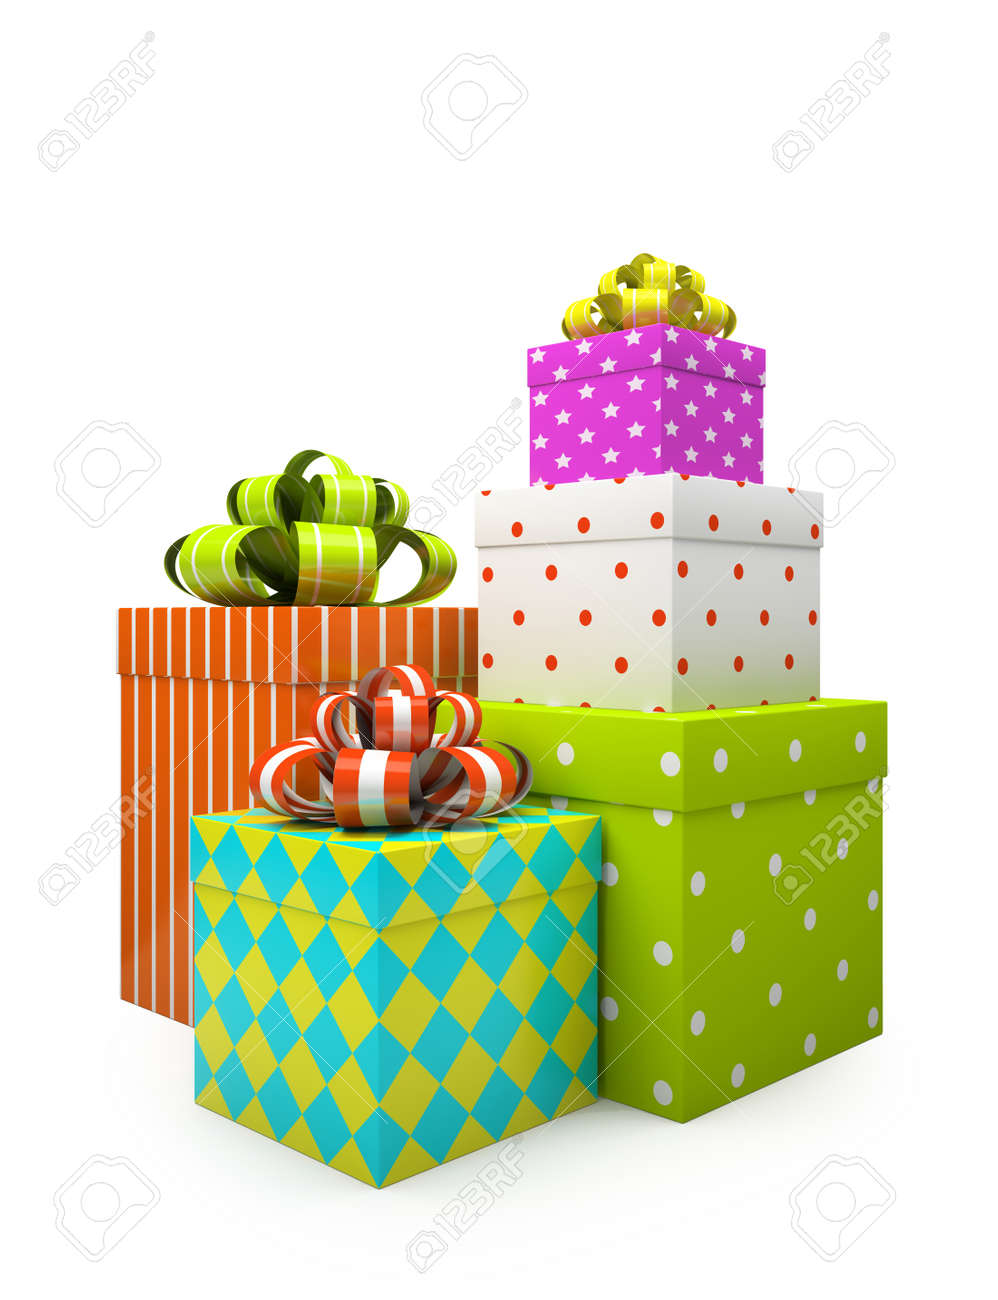 Color gift boxes isolated on white backgroung illustration Stock Photo - 16175254